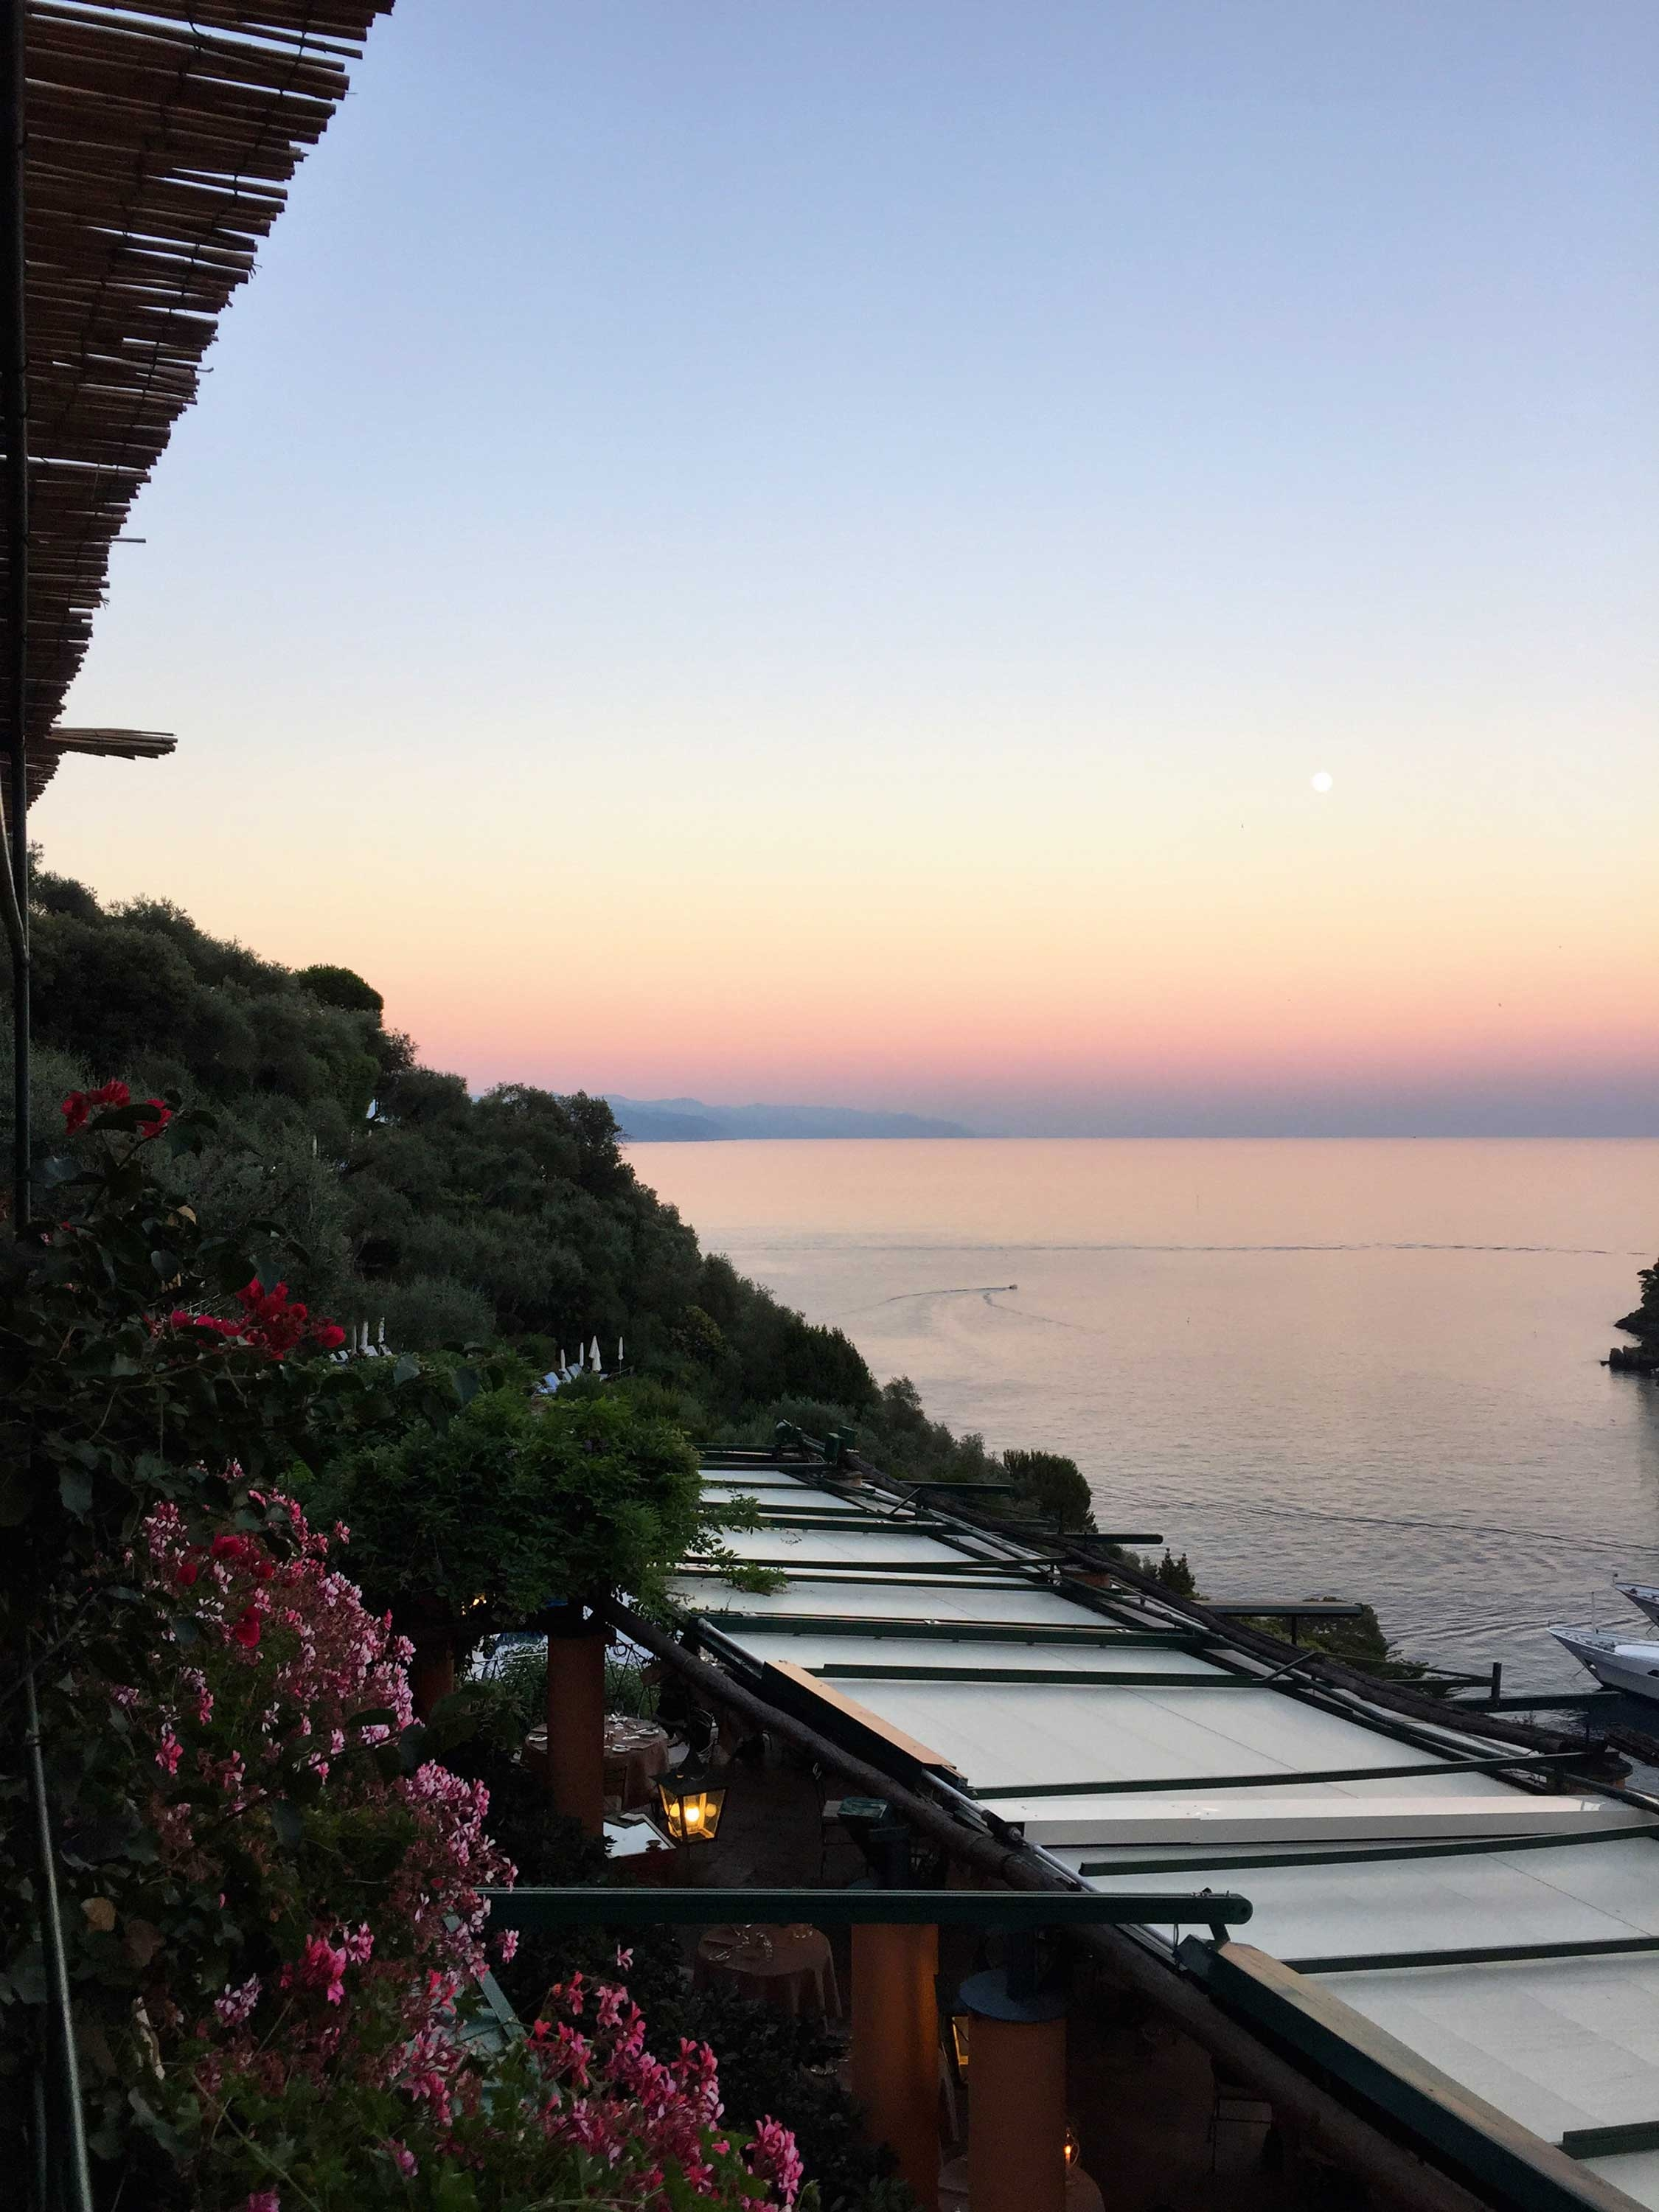 Watching the sun set over the horizon from the terrace at Hotel Splendido